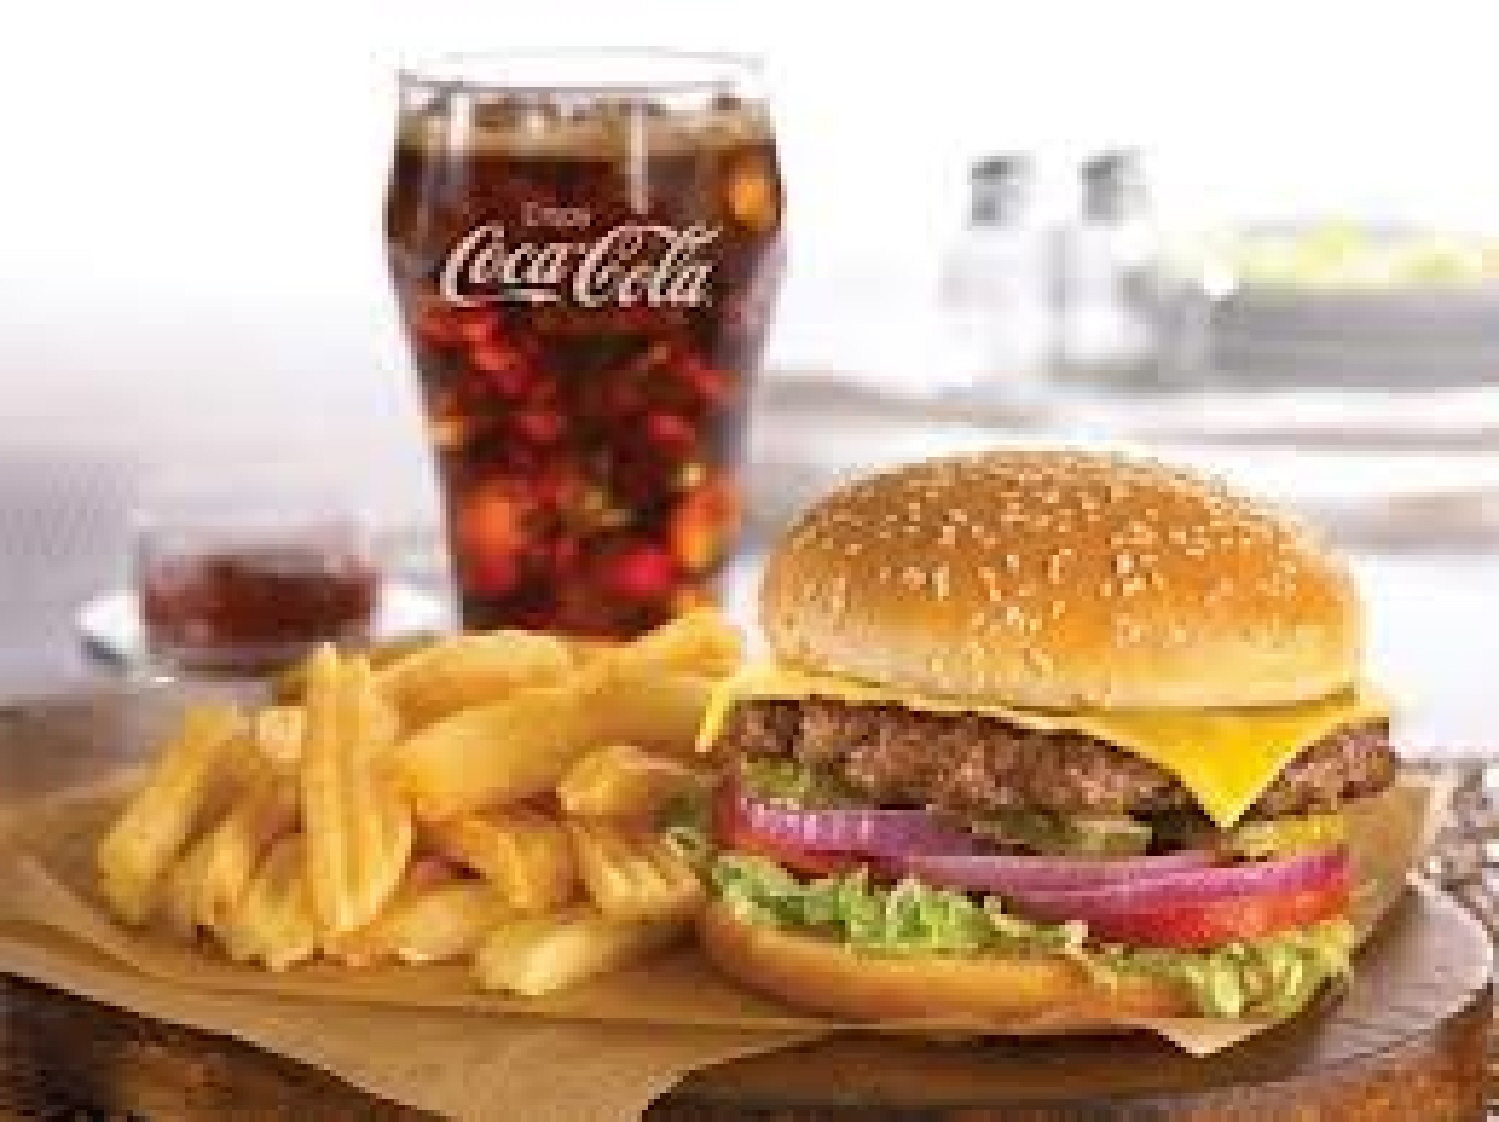 Burger King Offers 2 Cheeseburgers, Fries And Drink For $3 ...  |Cheeseburger And Fries